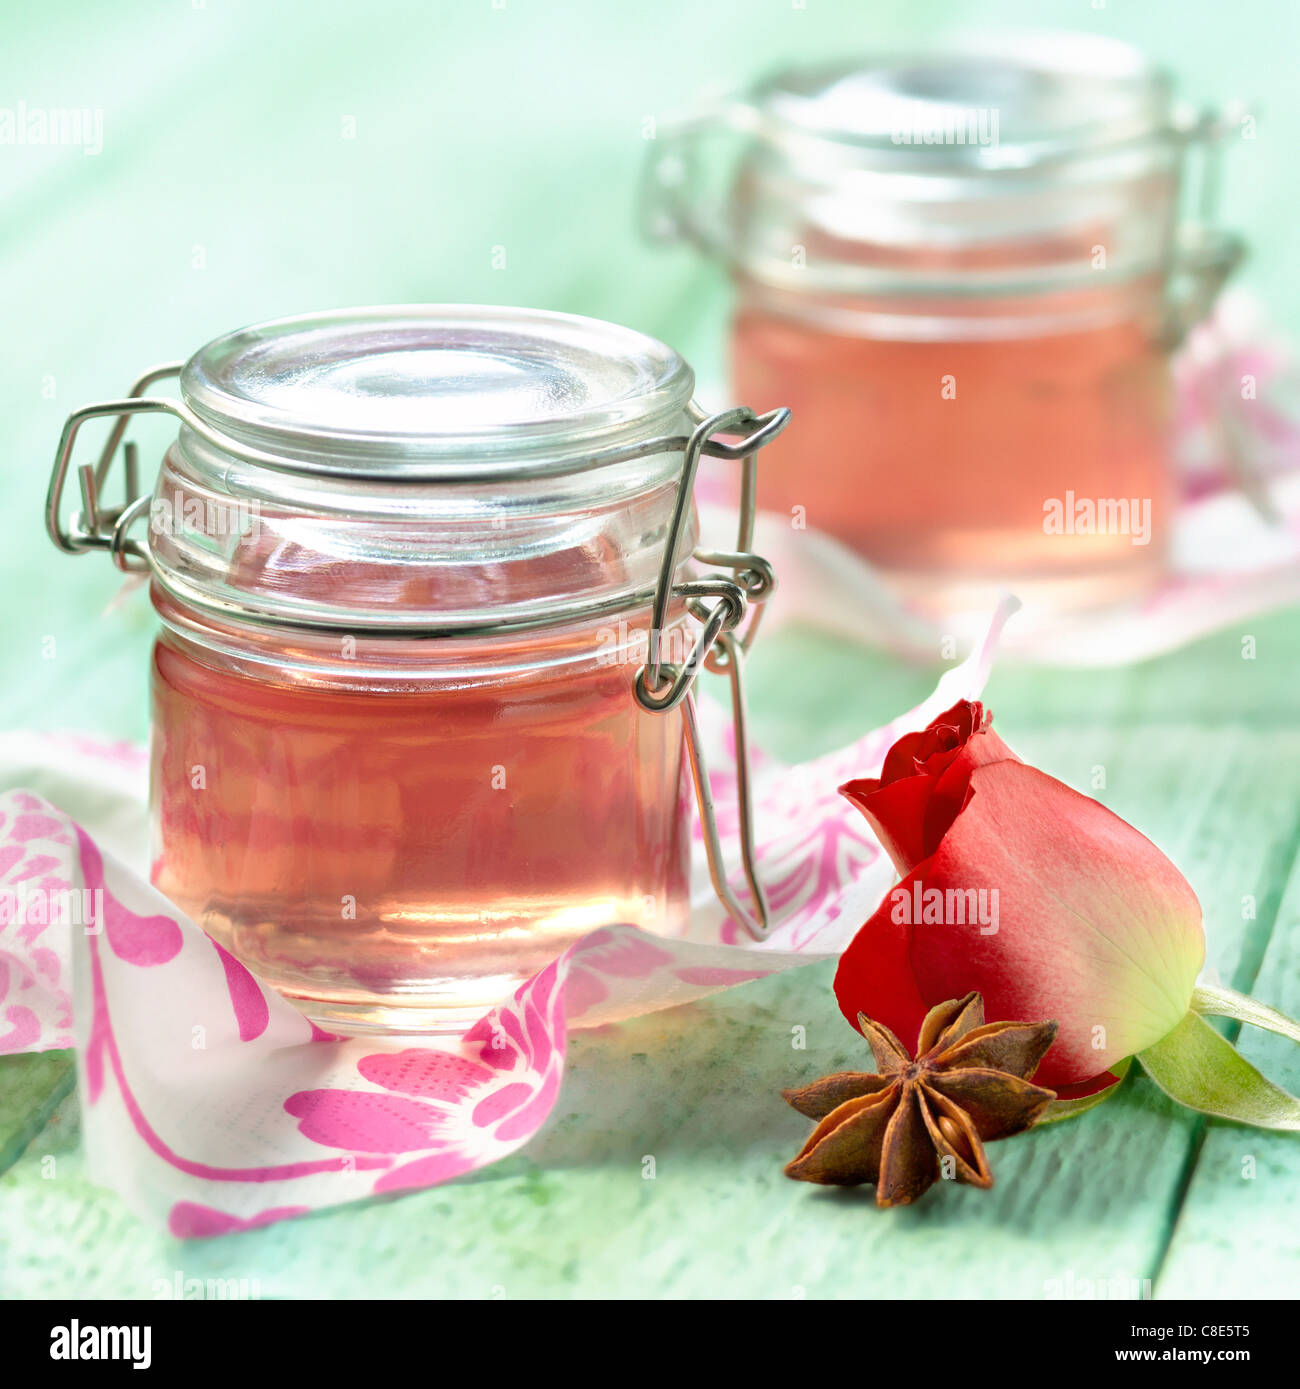 Rose et anis star jelly Photo Stock